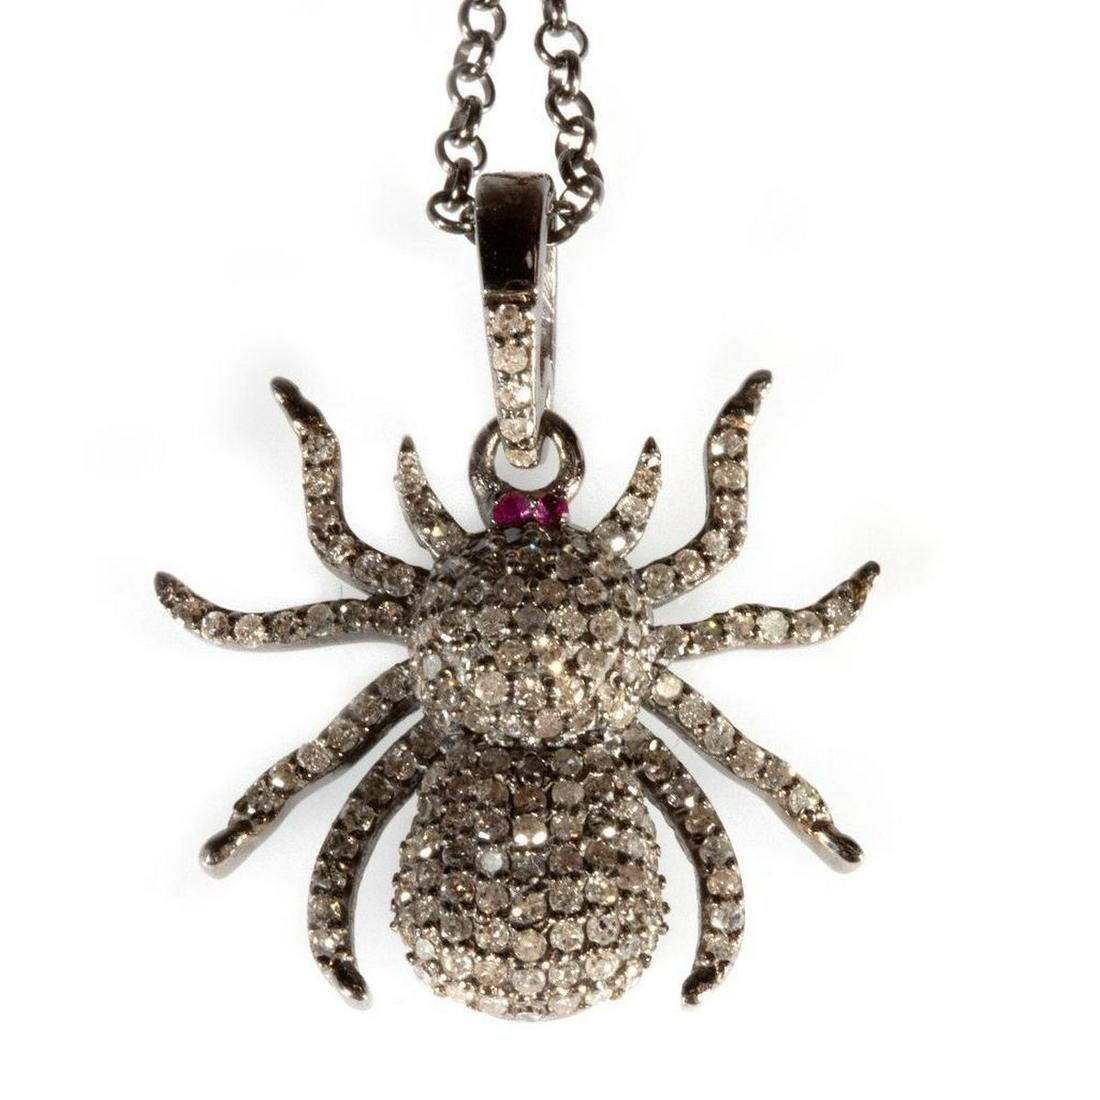 Diamond, ruby and blackened silver pendant and chain